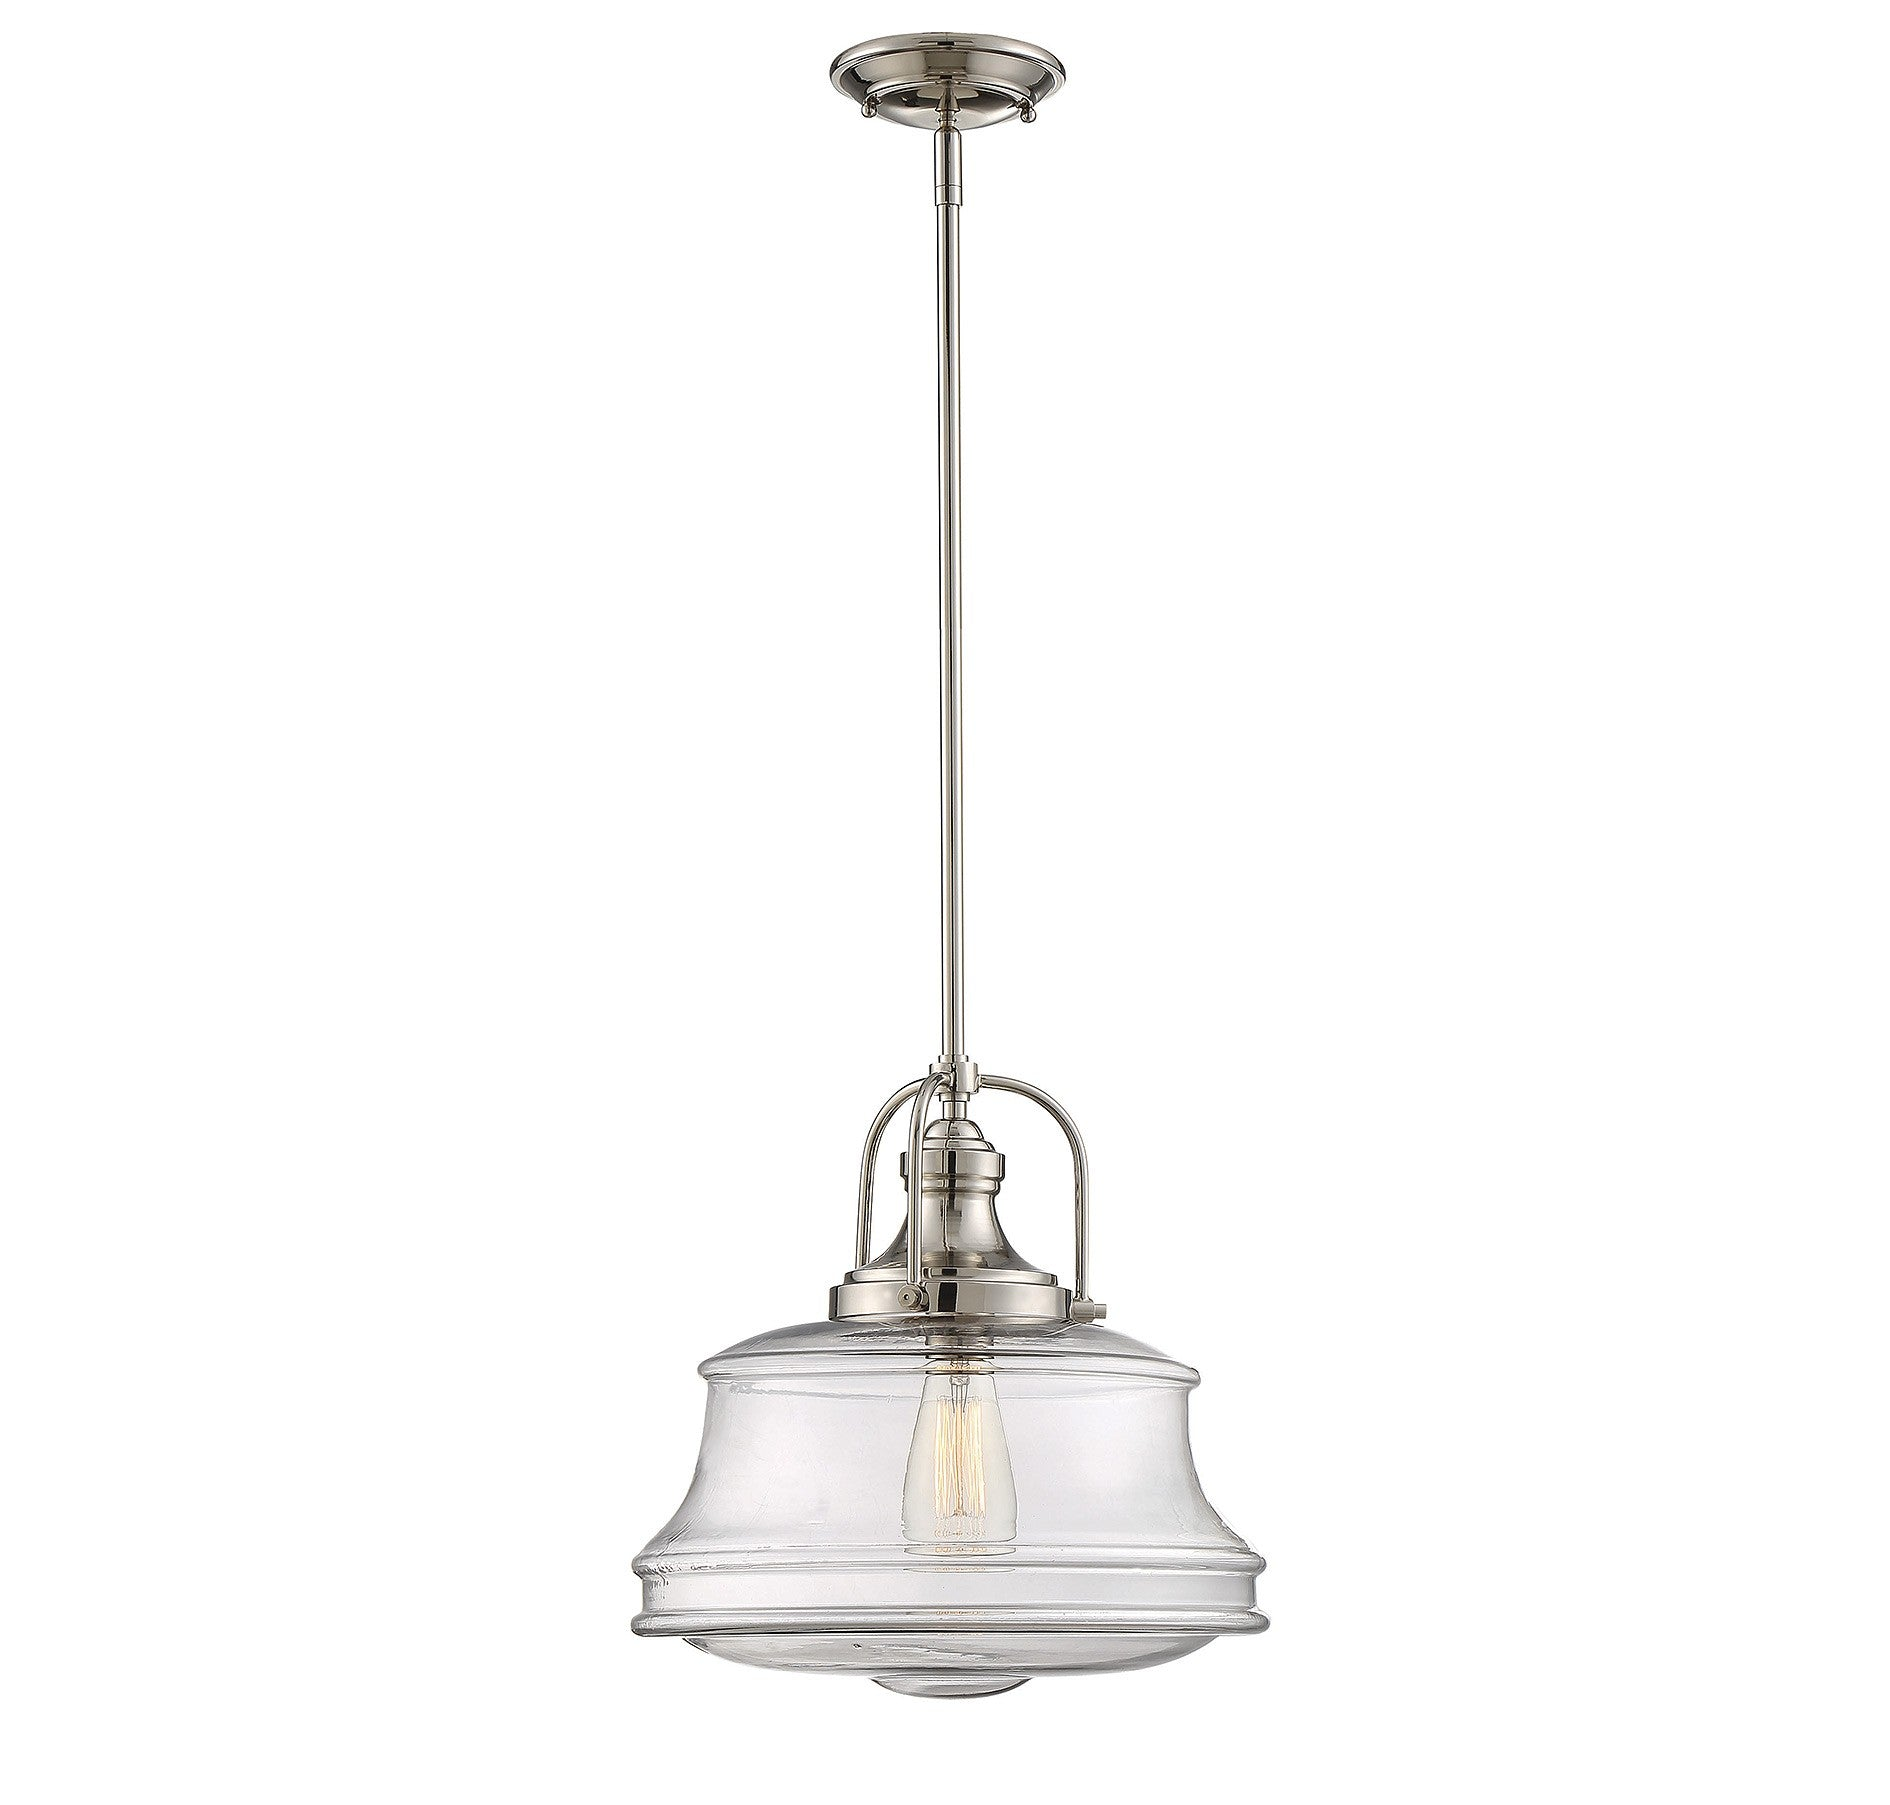 Garvey 1 Light Pendant in Polished Nickel with Clear Glass Shade by Savoy House 7-5012-1-109